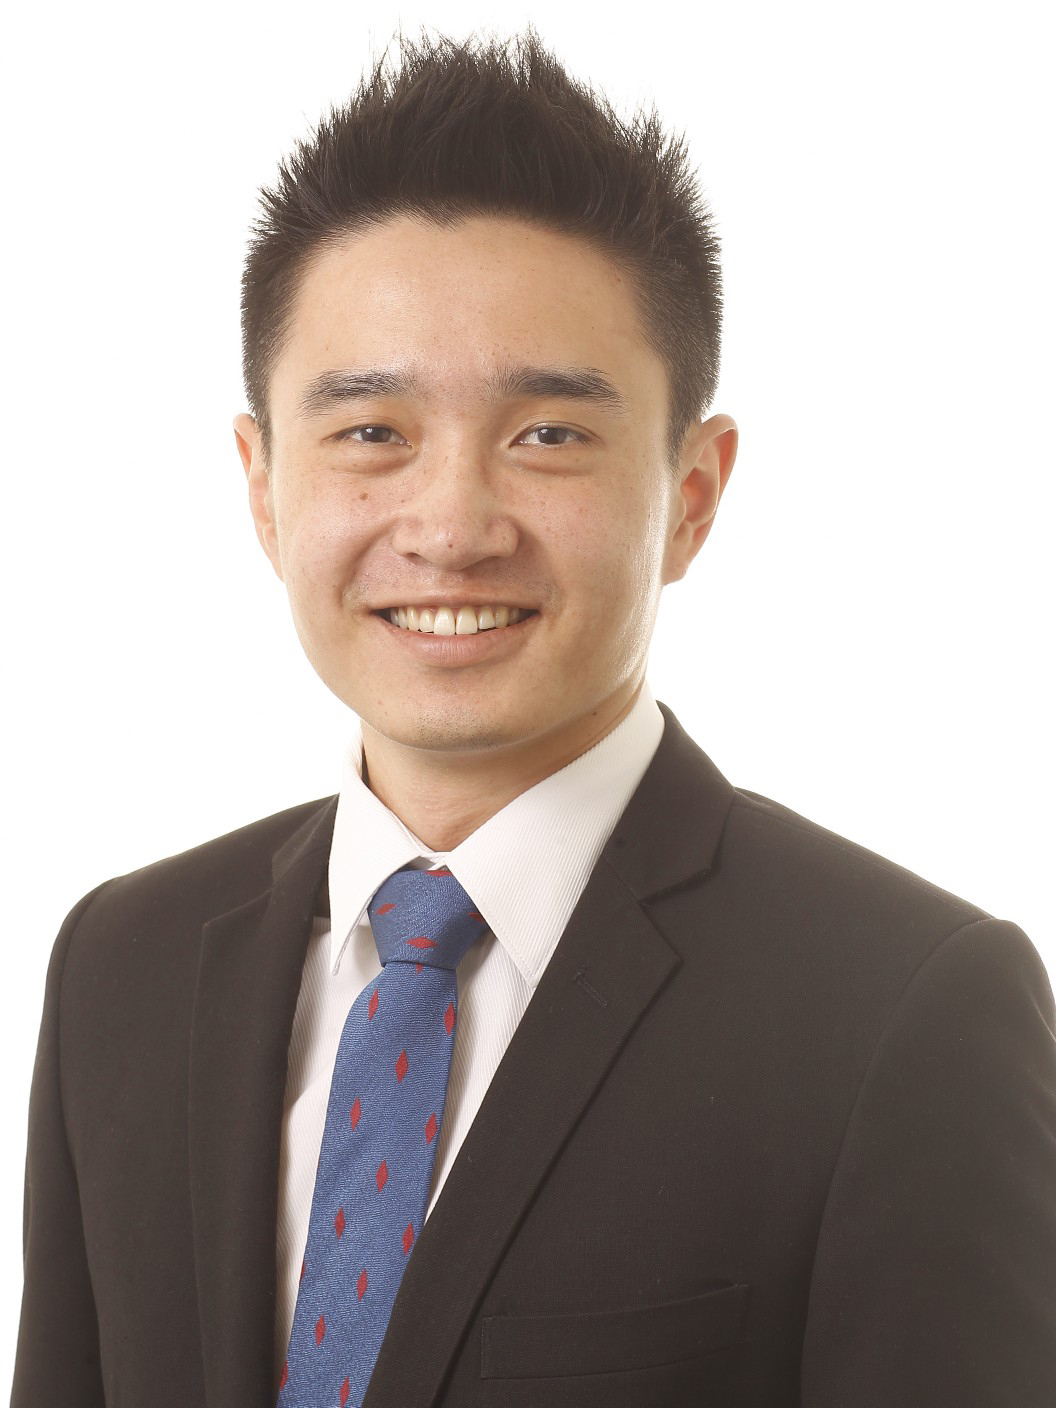 Jacky Song opted commerce/engineering at Monash